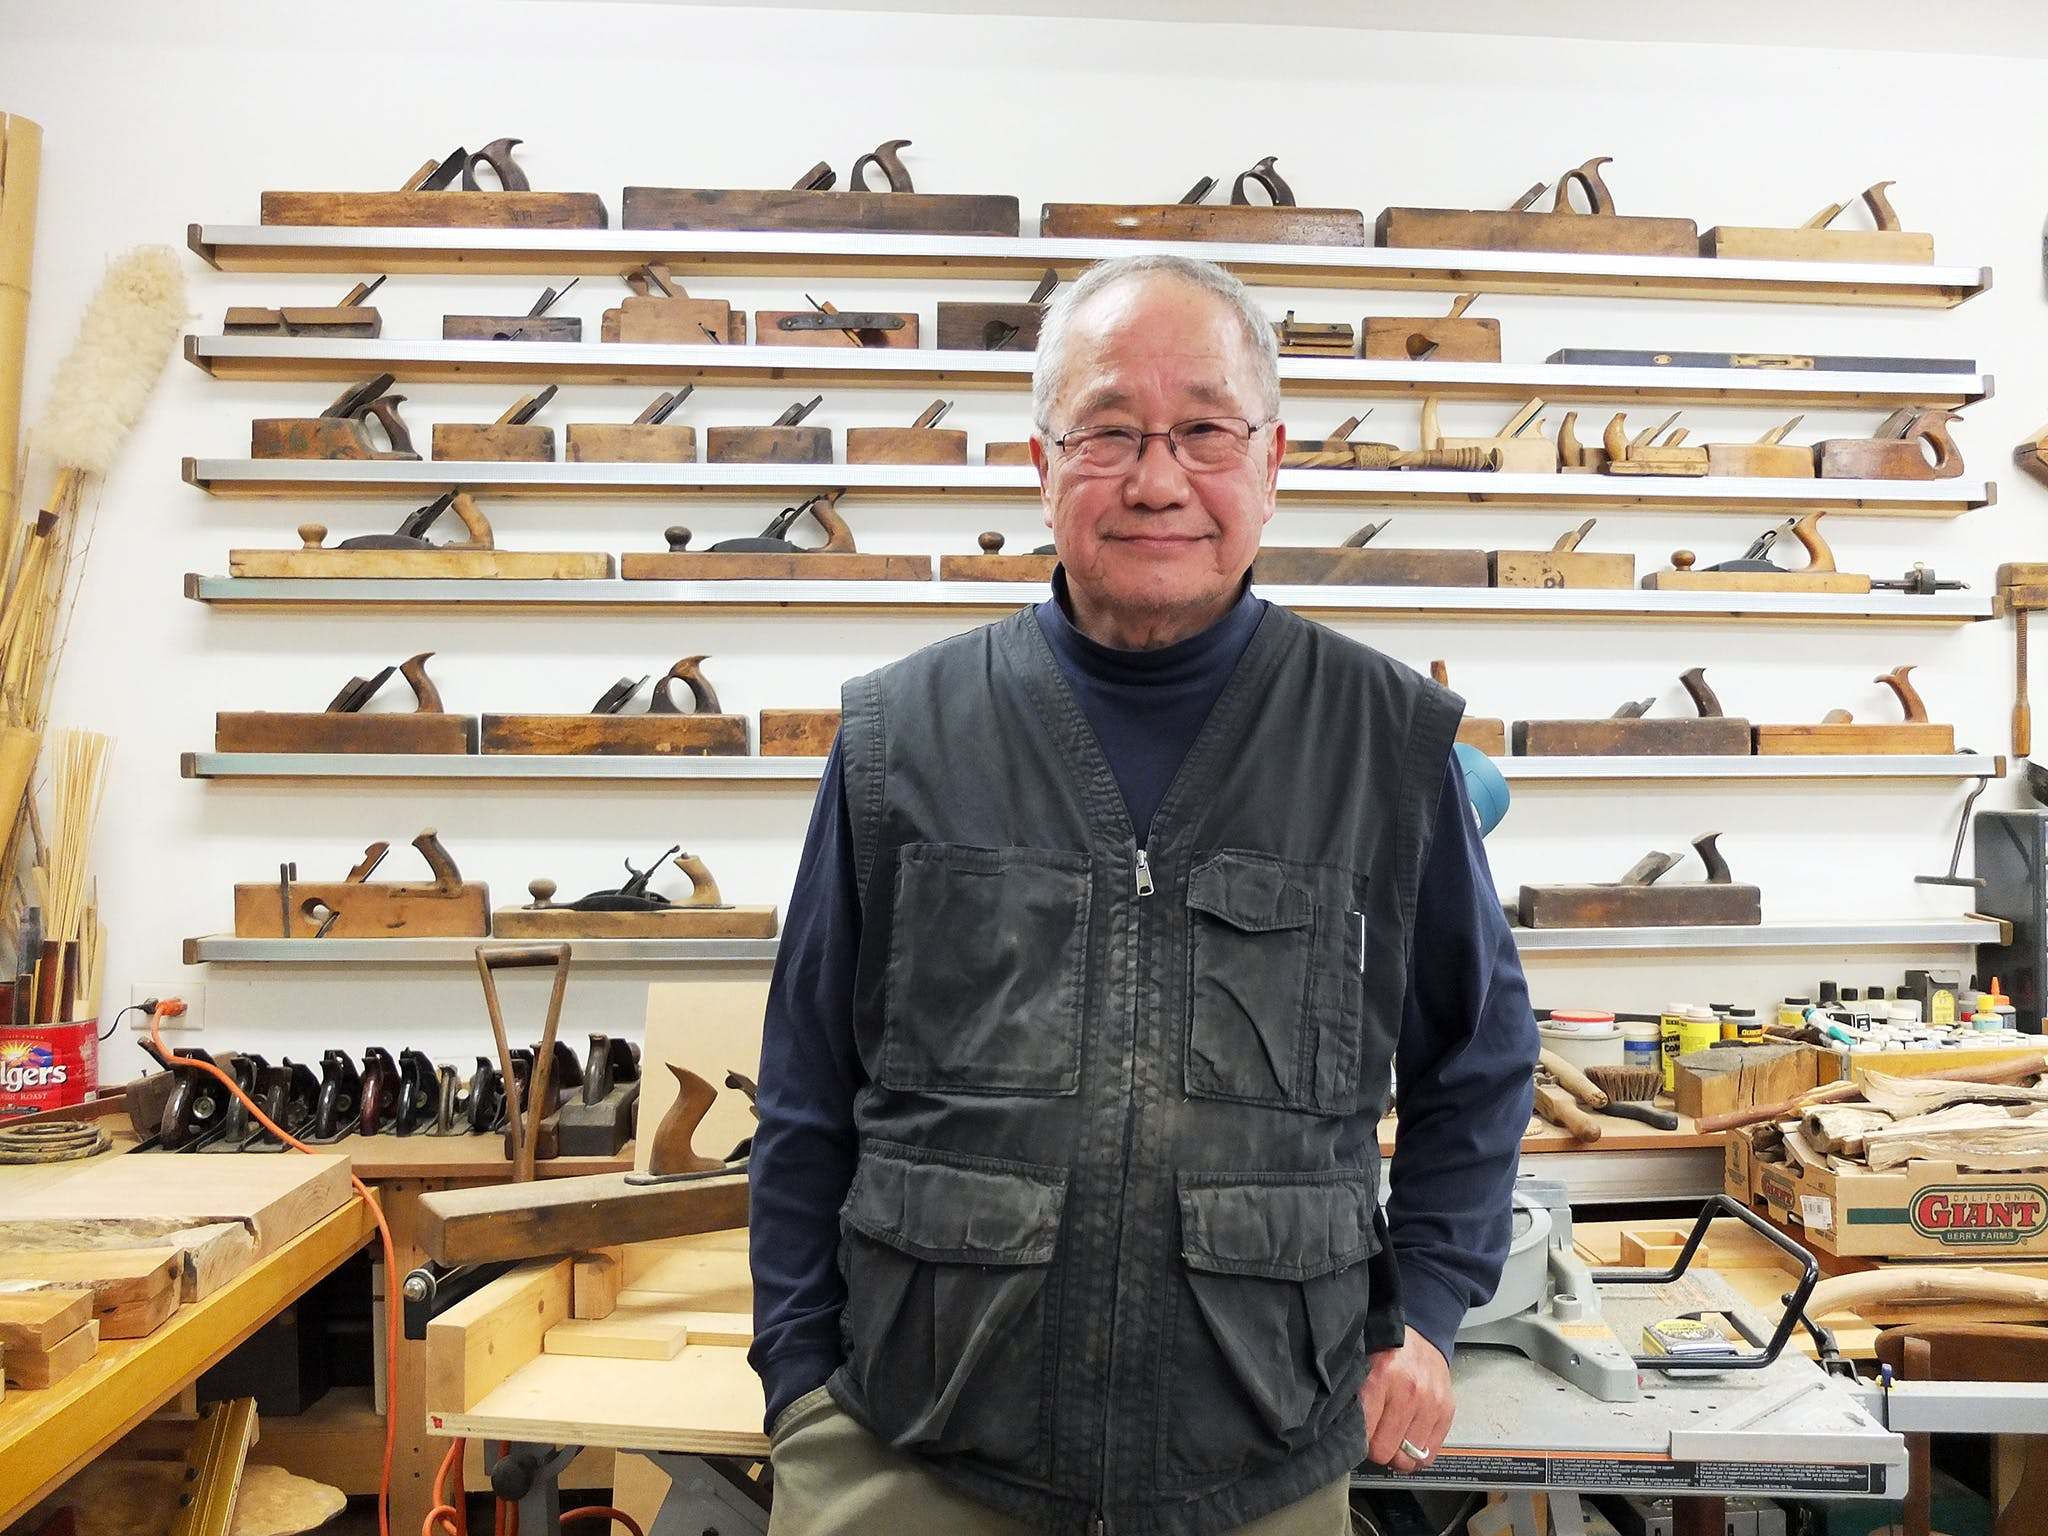 Kinji Akagawa standing in workshop.